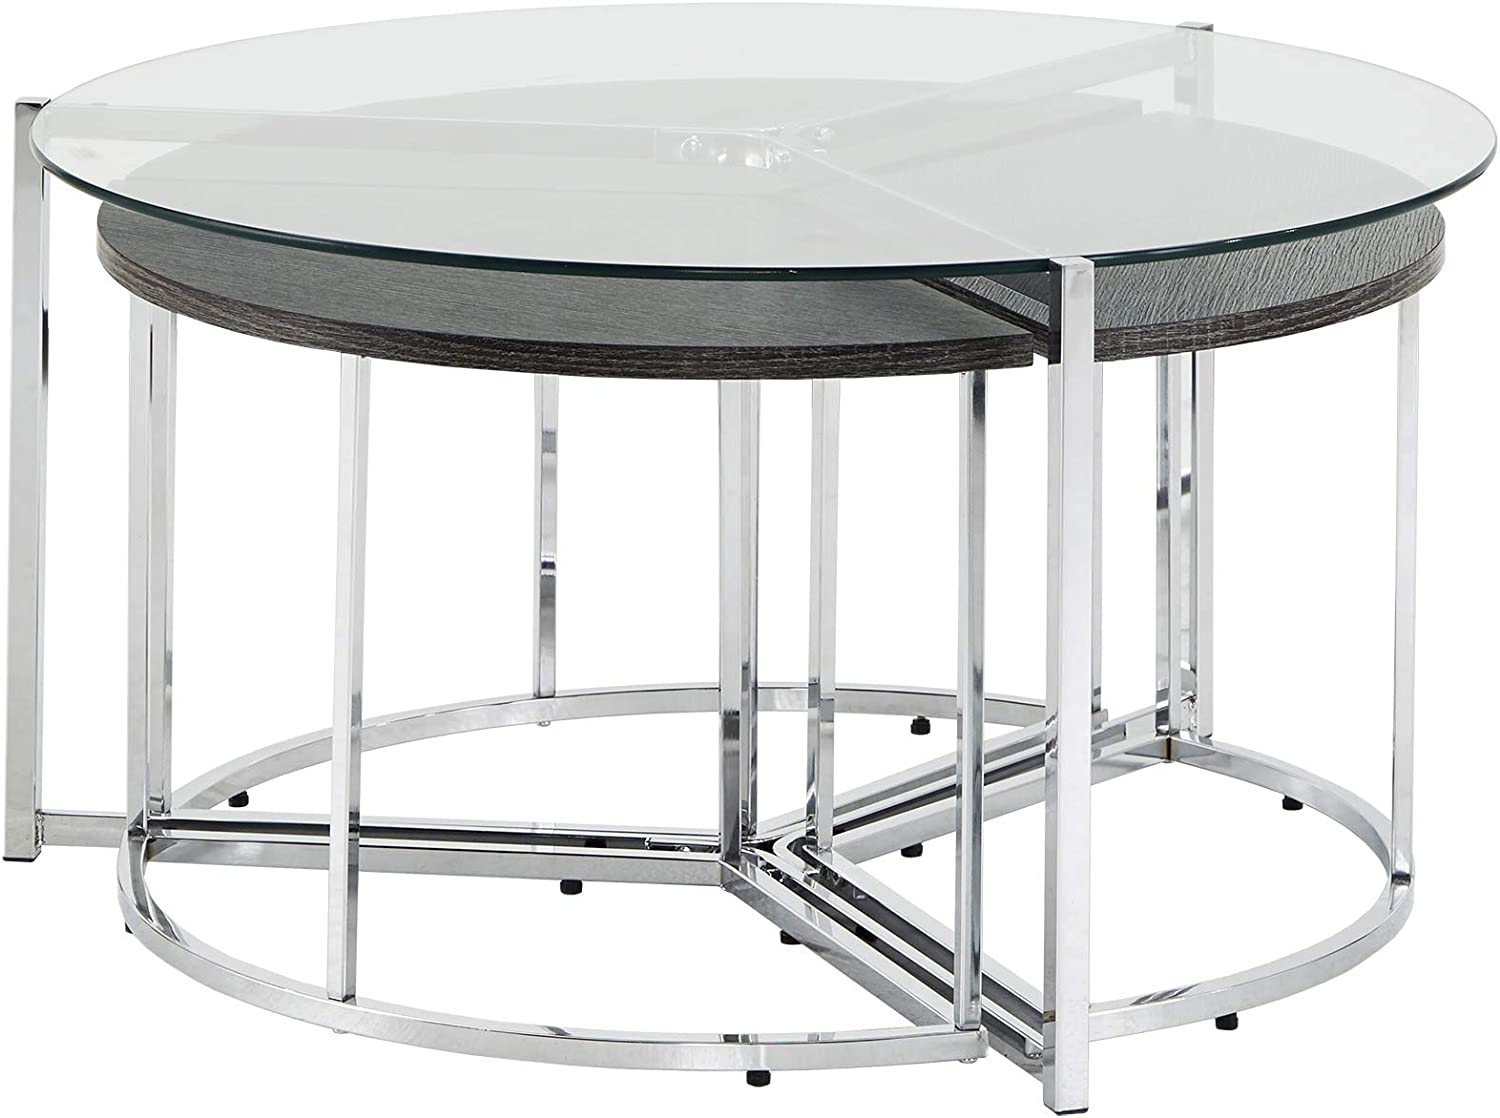 Union 5 Home Chrome Fort Worth Mall Finish Glass and Fashionable End Top Table Set Coffee